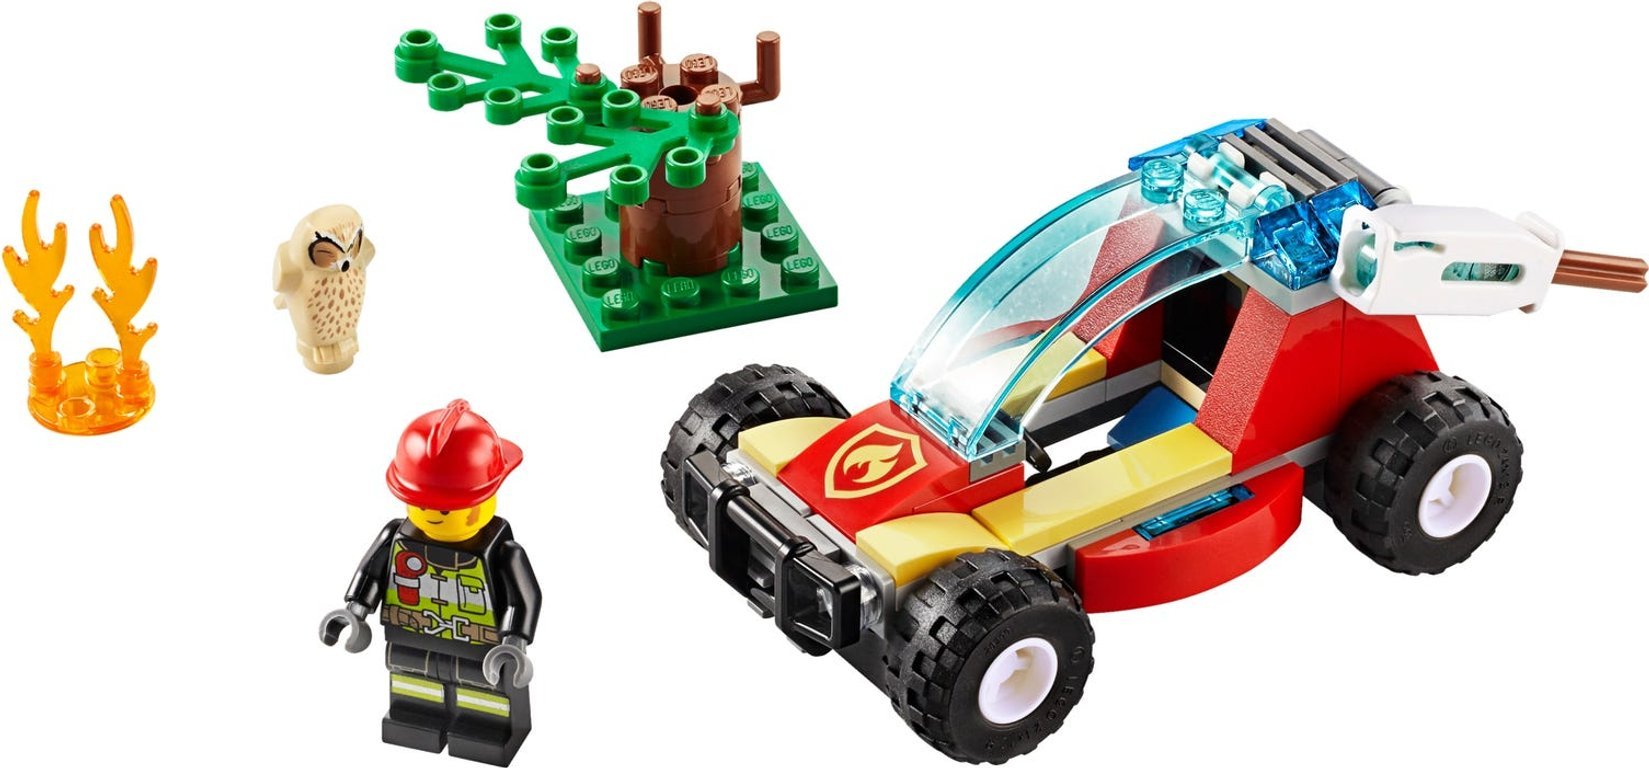 LEGO® City Forest Fire components